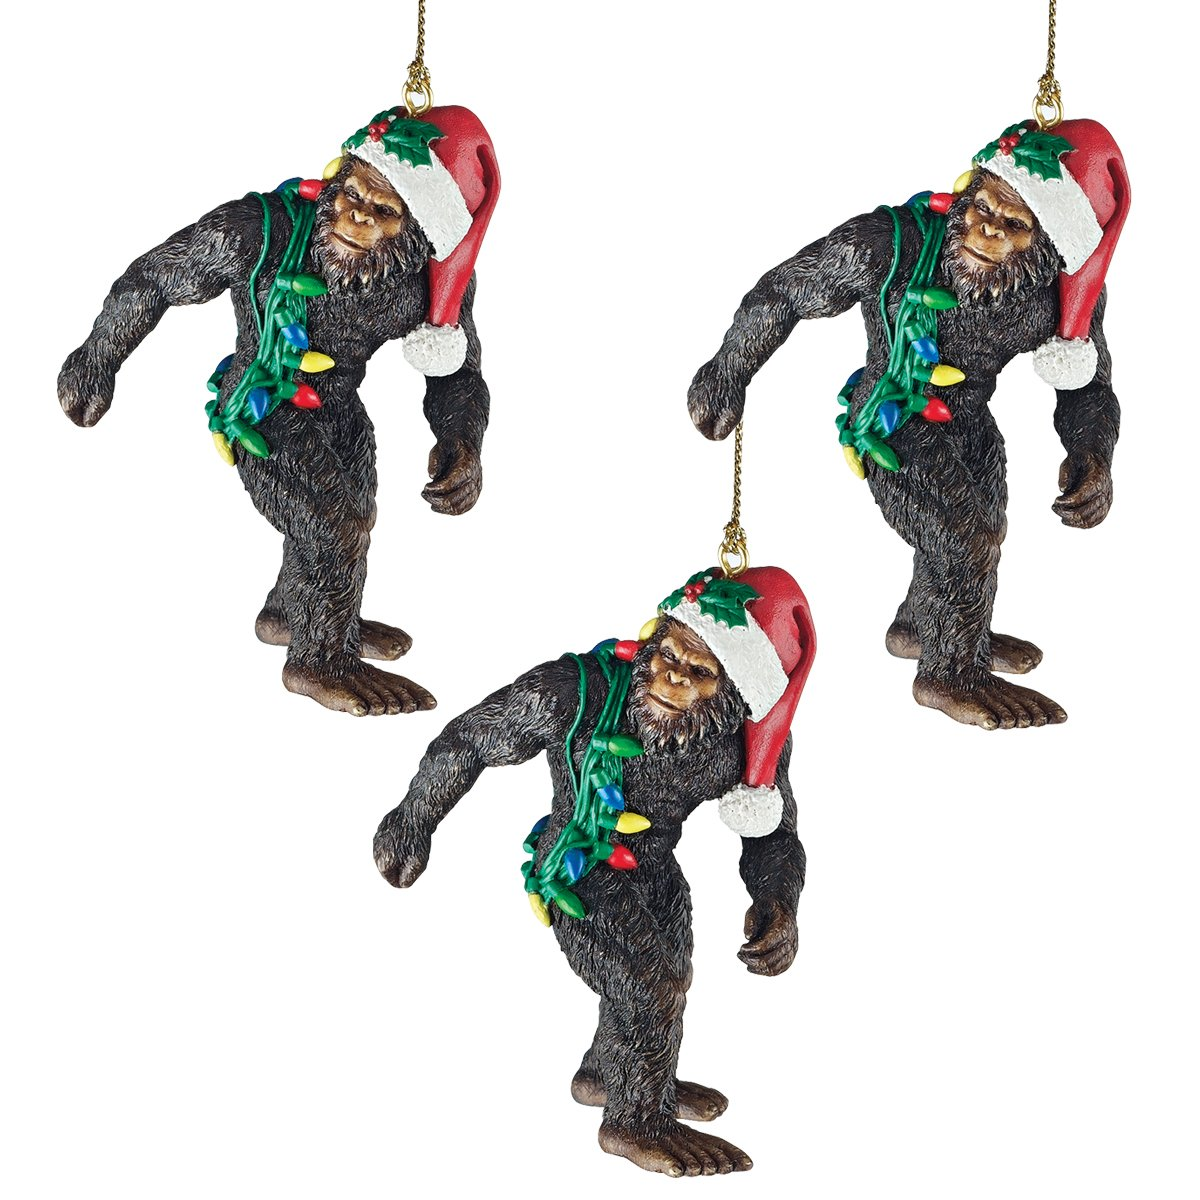 Design Toscano Christmas Tree Ornaments - Bigfoot The Holiday Yeti with Santa Hat Holiday Ornament: Set of Three - Funny Christmas Ornaments - Christmas Decorations